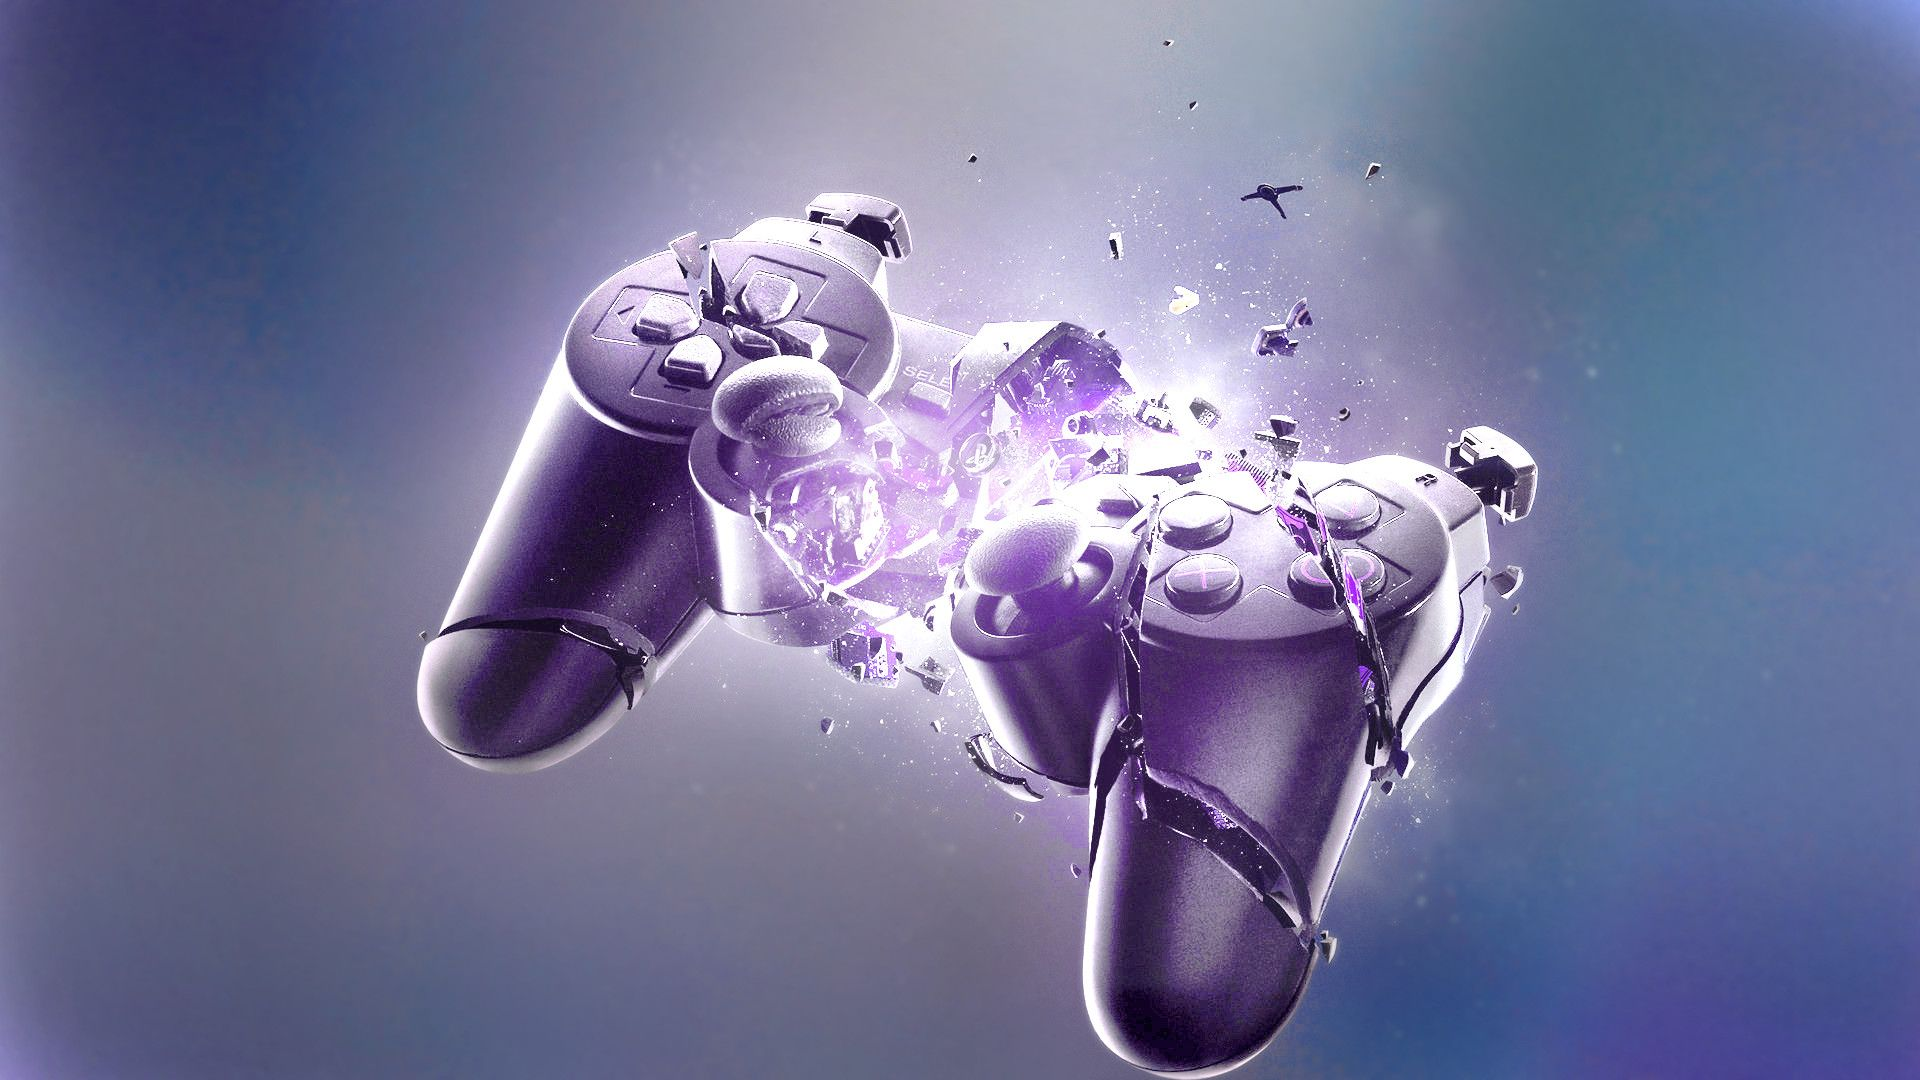 Playstation controller wallpapers top free playstation - Ps4 wallpaper hd ...